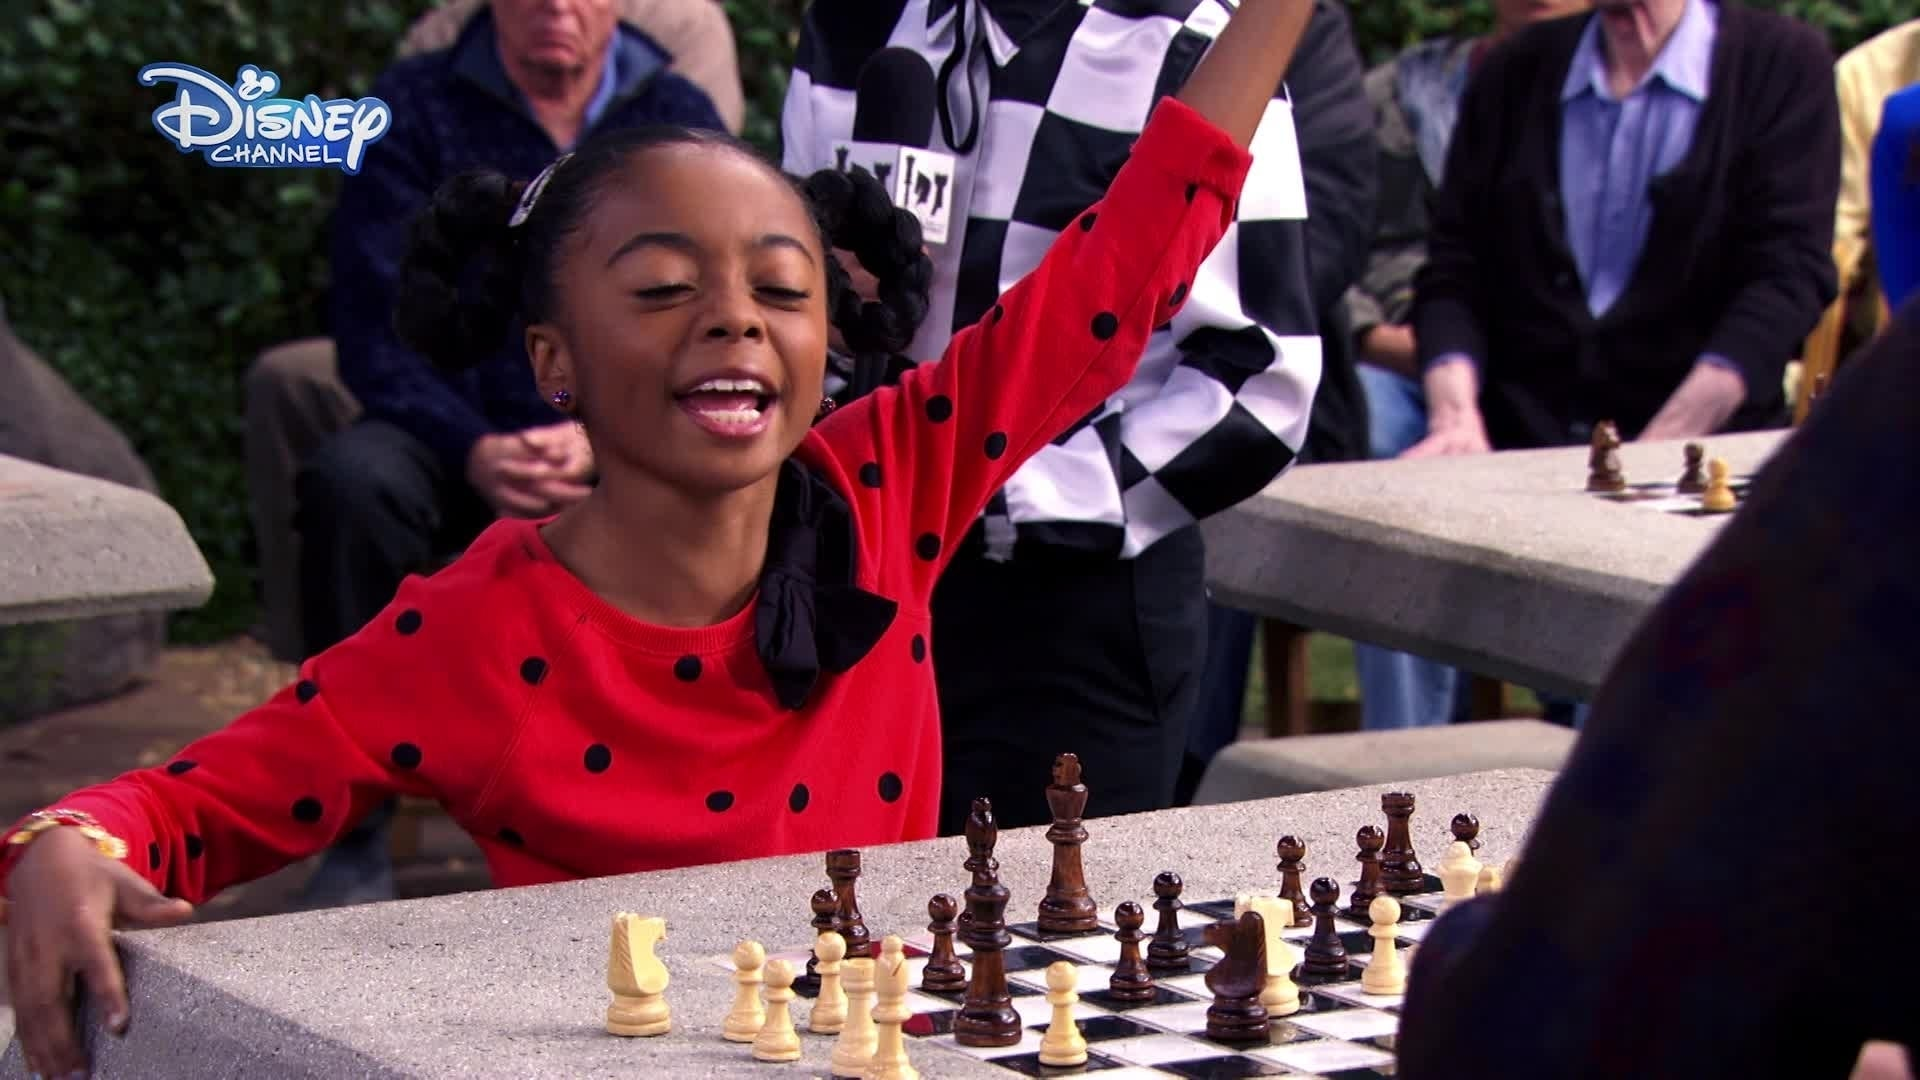 The Chess Tournament